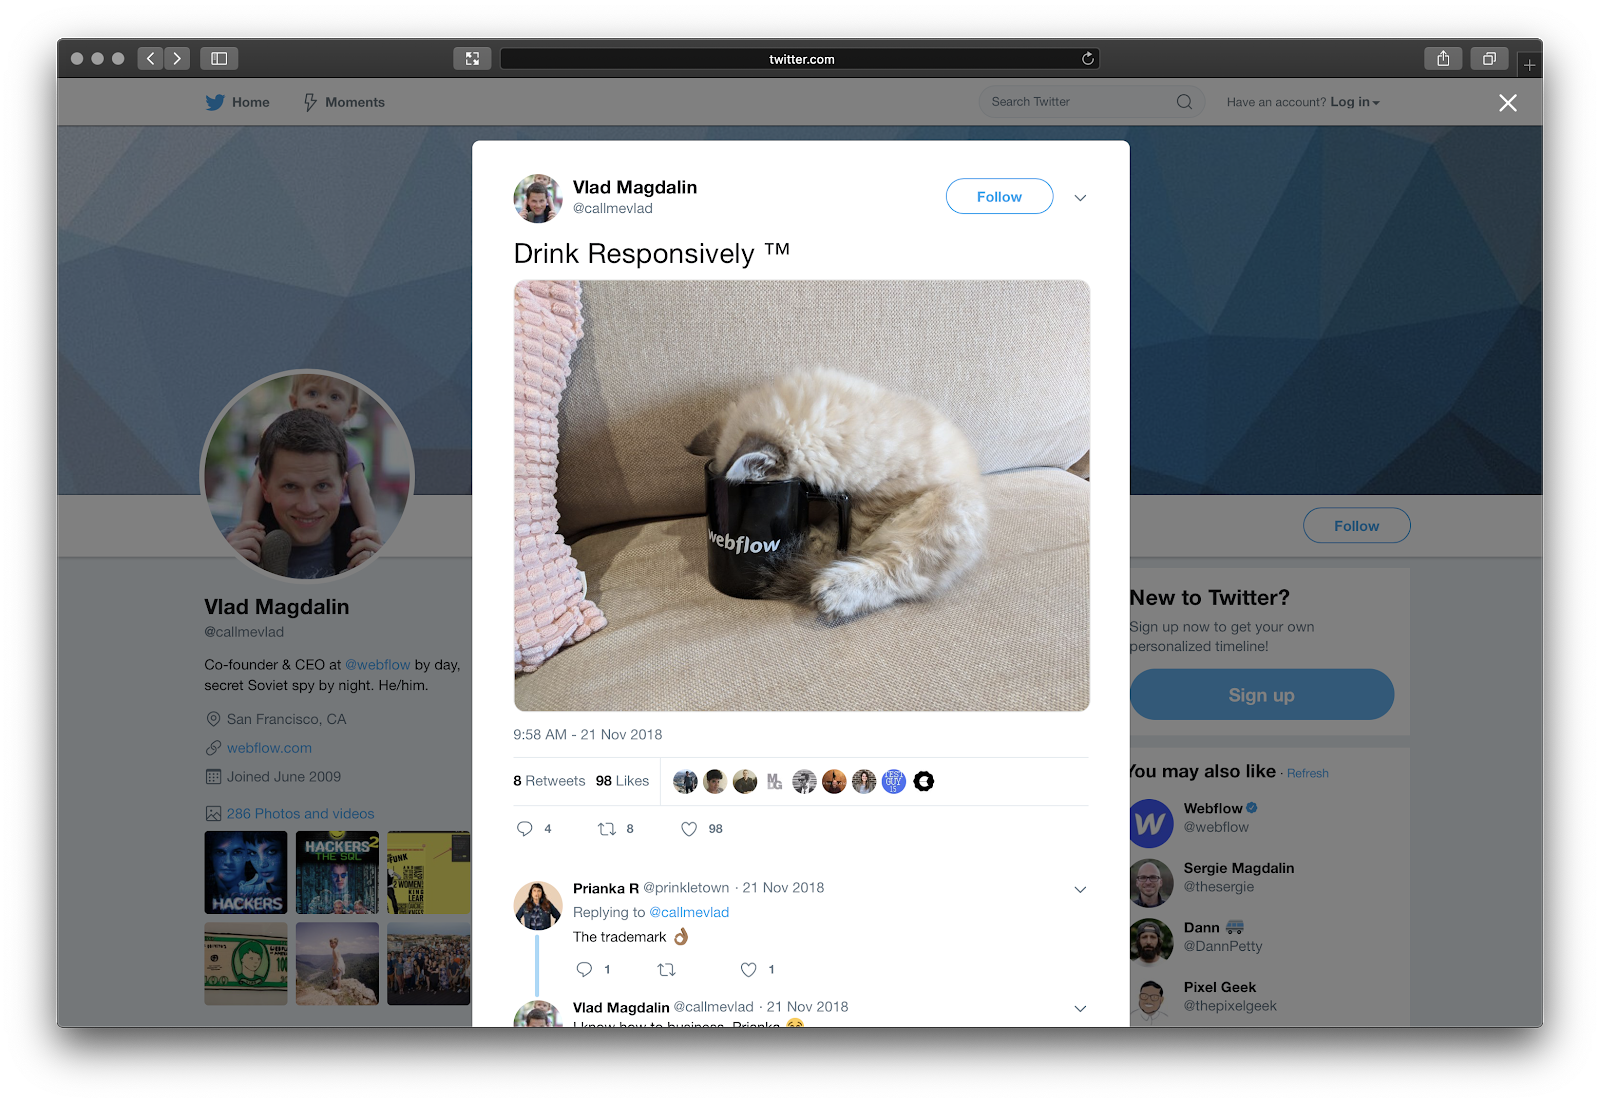 """Tweet by Vlad Magdalin with a picture of a kitten with its head in a Webflow branded mug and a caption that says, """"Drink Responsively"""""""